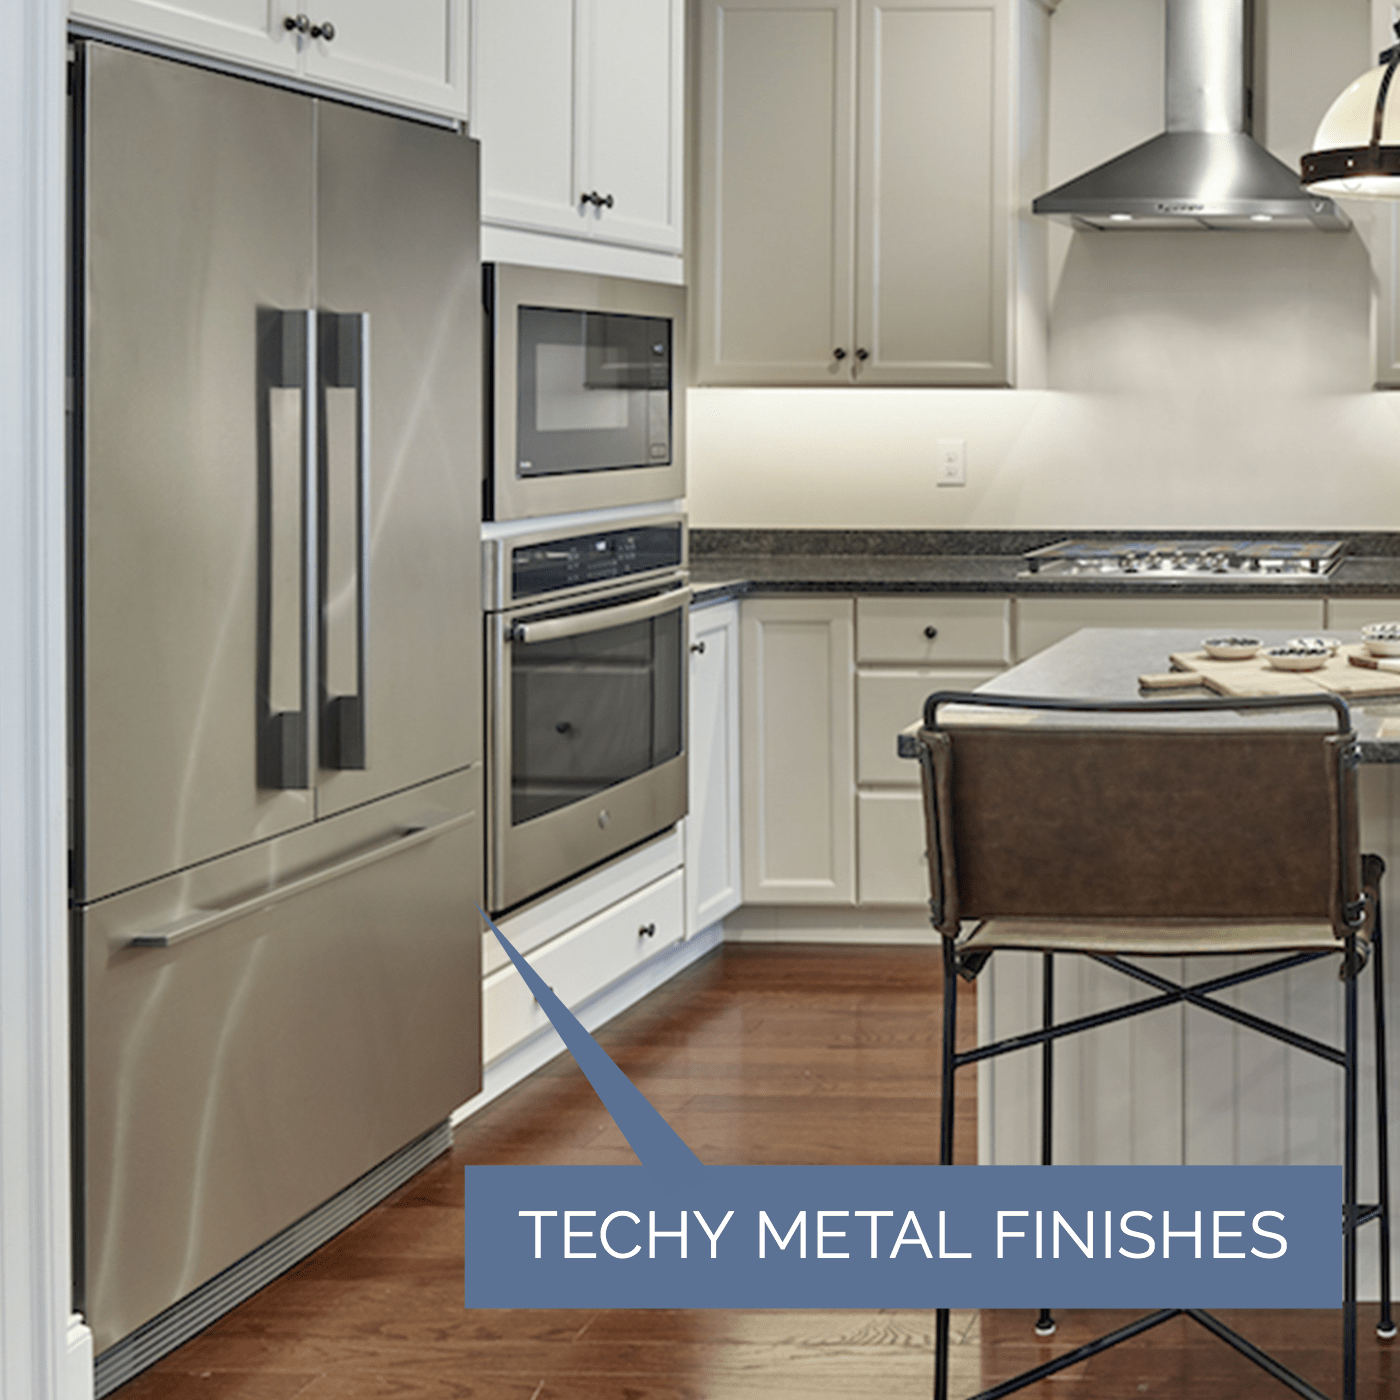 Image of appliances with techy metal finishes